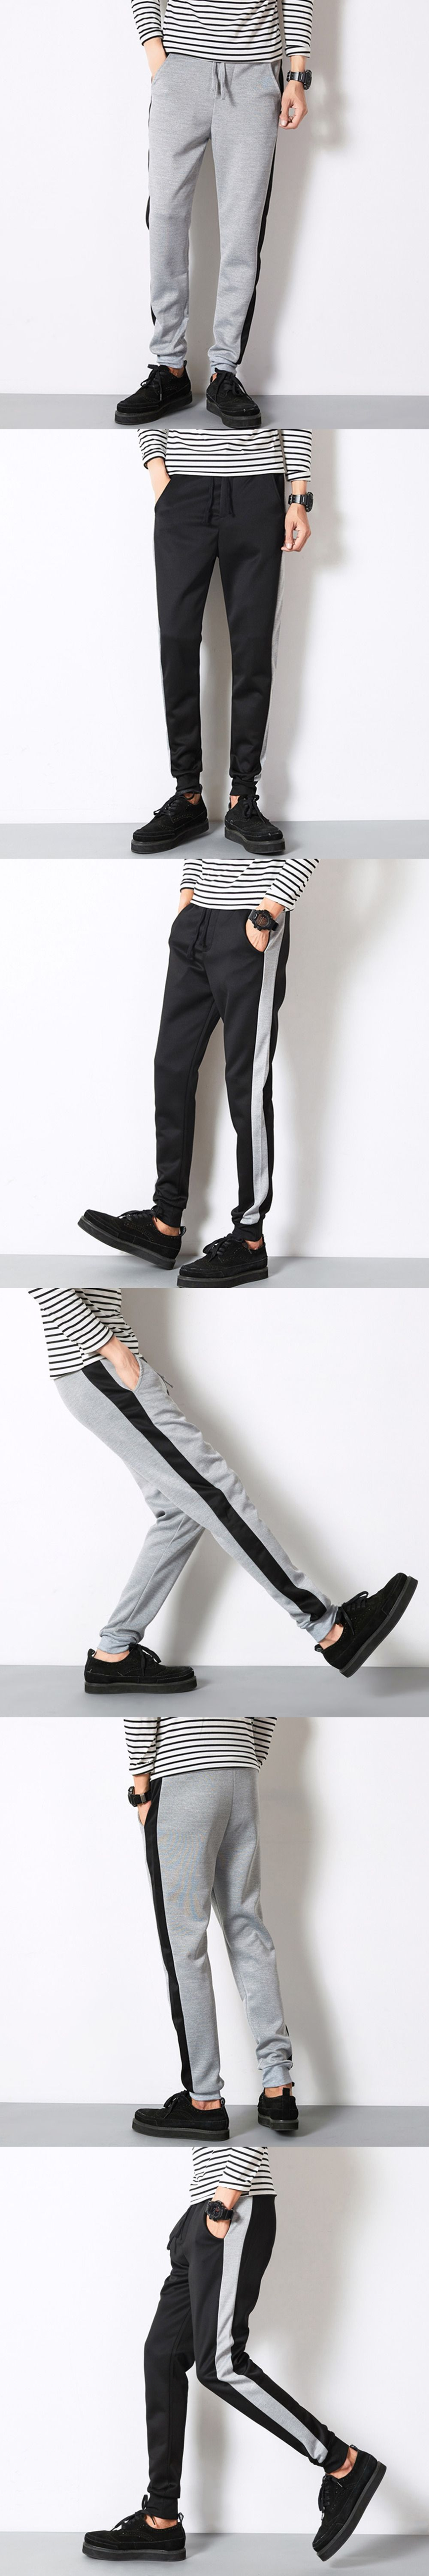 New Autumn New Style 2016 Men Male Japanese Style Casual Pants